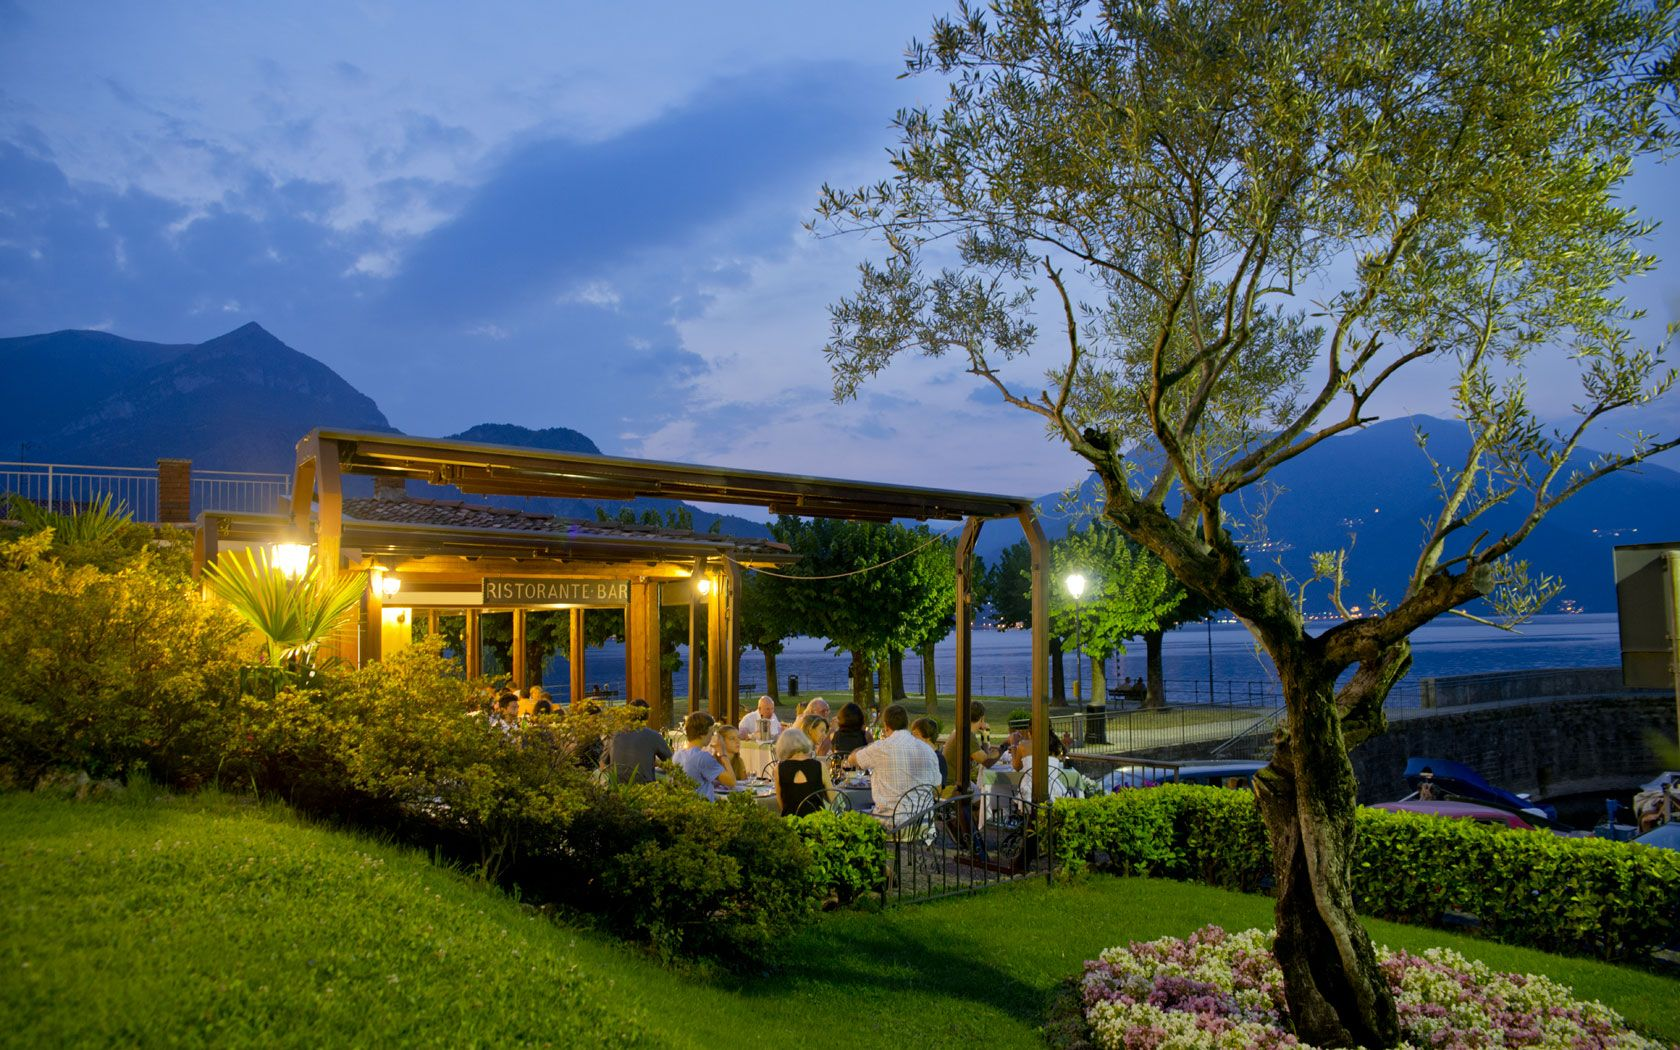 Ristorante la Punta Bellagio, Lake Como, Italy (With